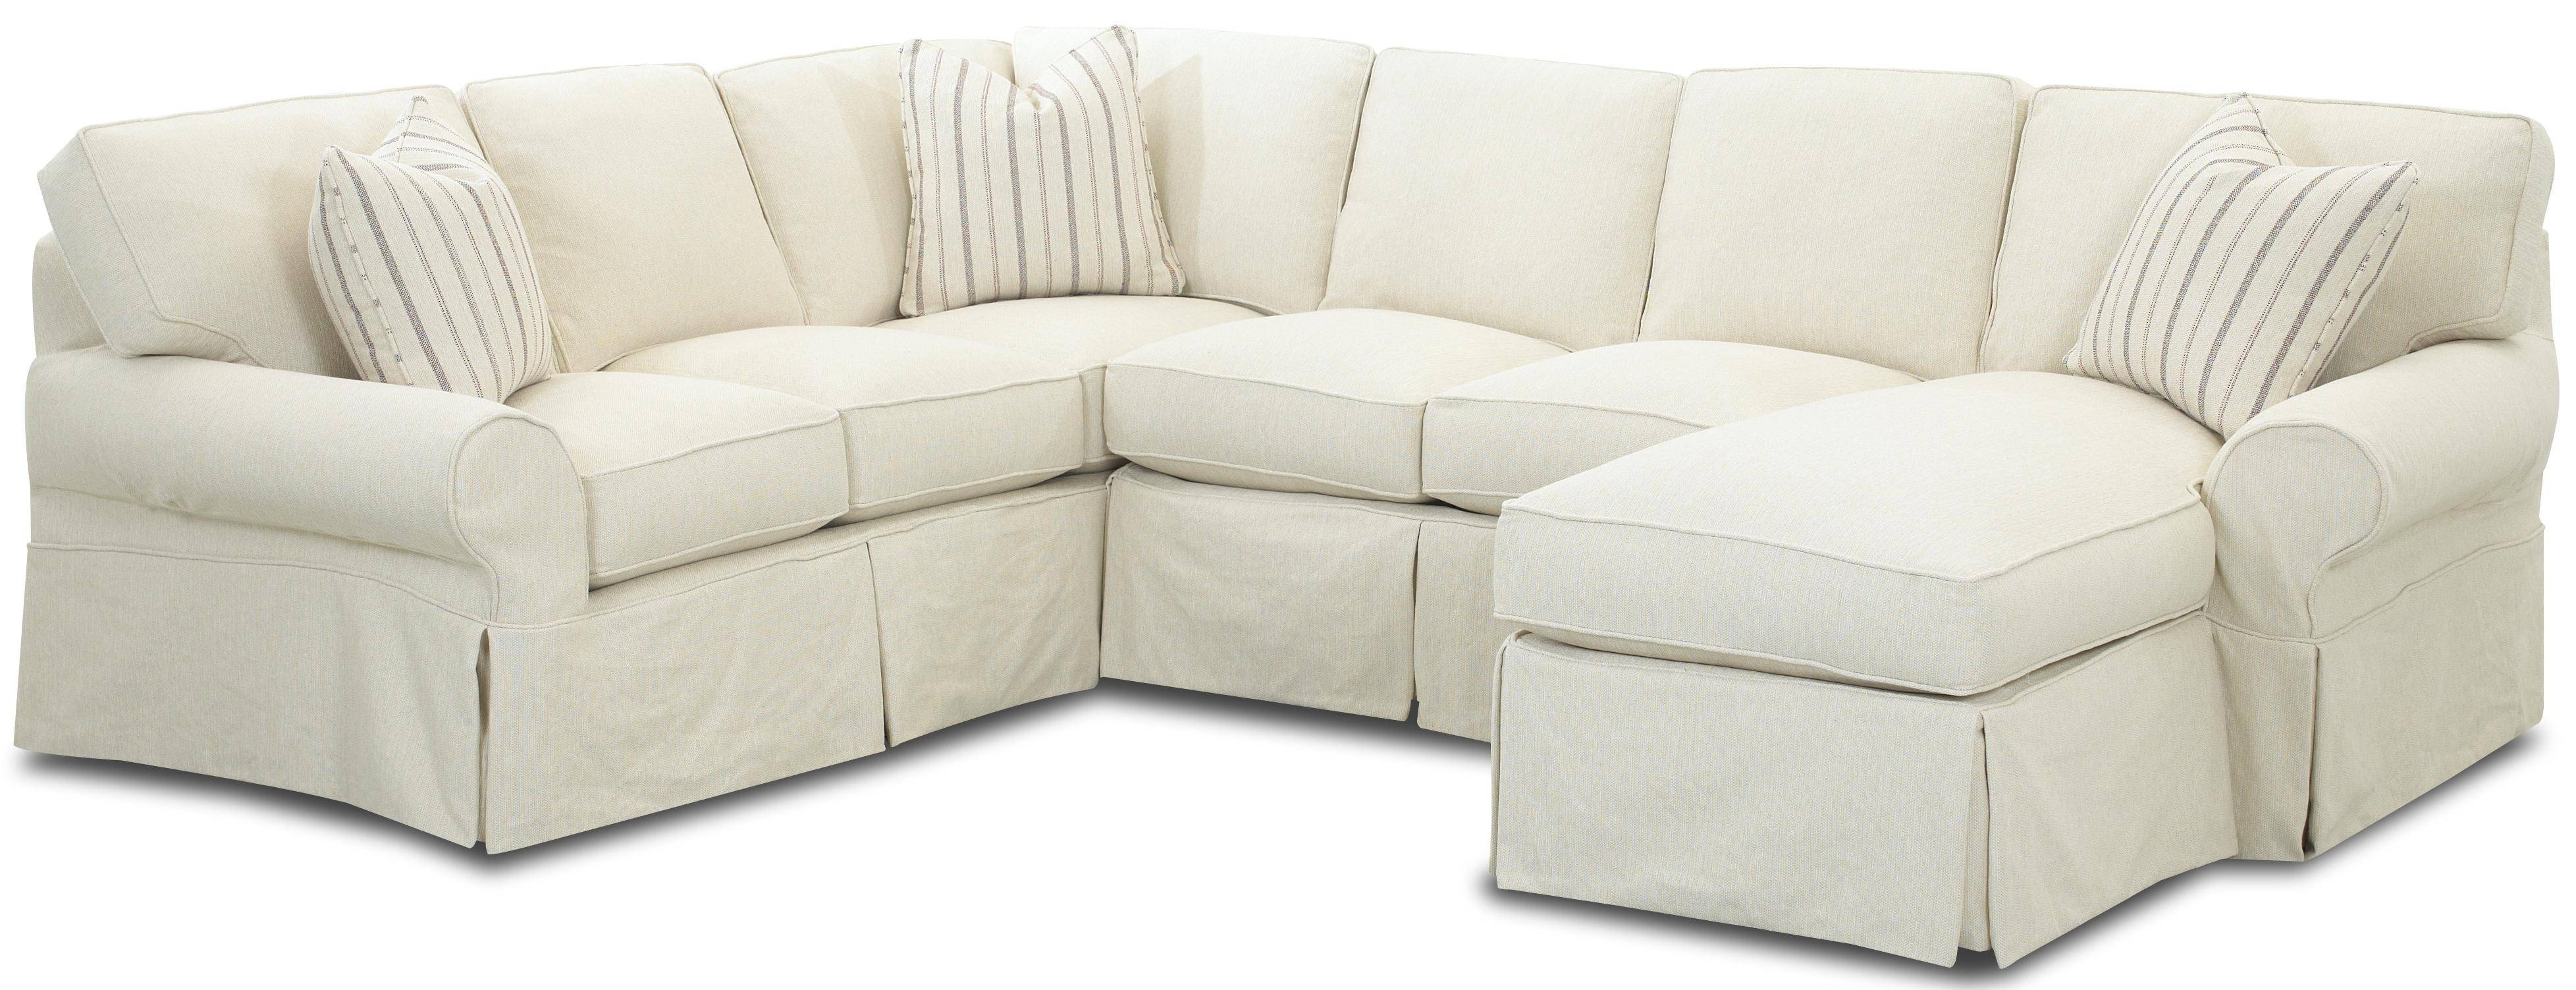 Furniture: Inspirational Slipcover Sectional Sofa For Modern For Sofas Cover For Sectional Sofas (View 5 of 15)